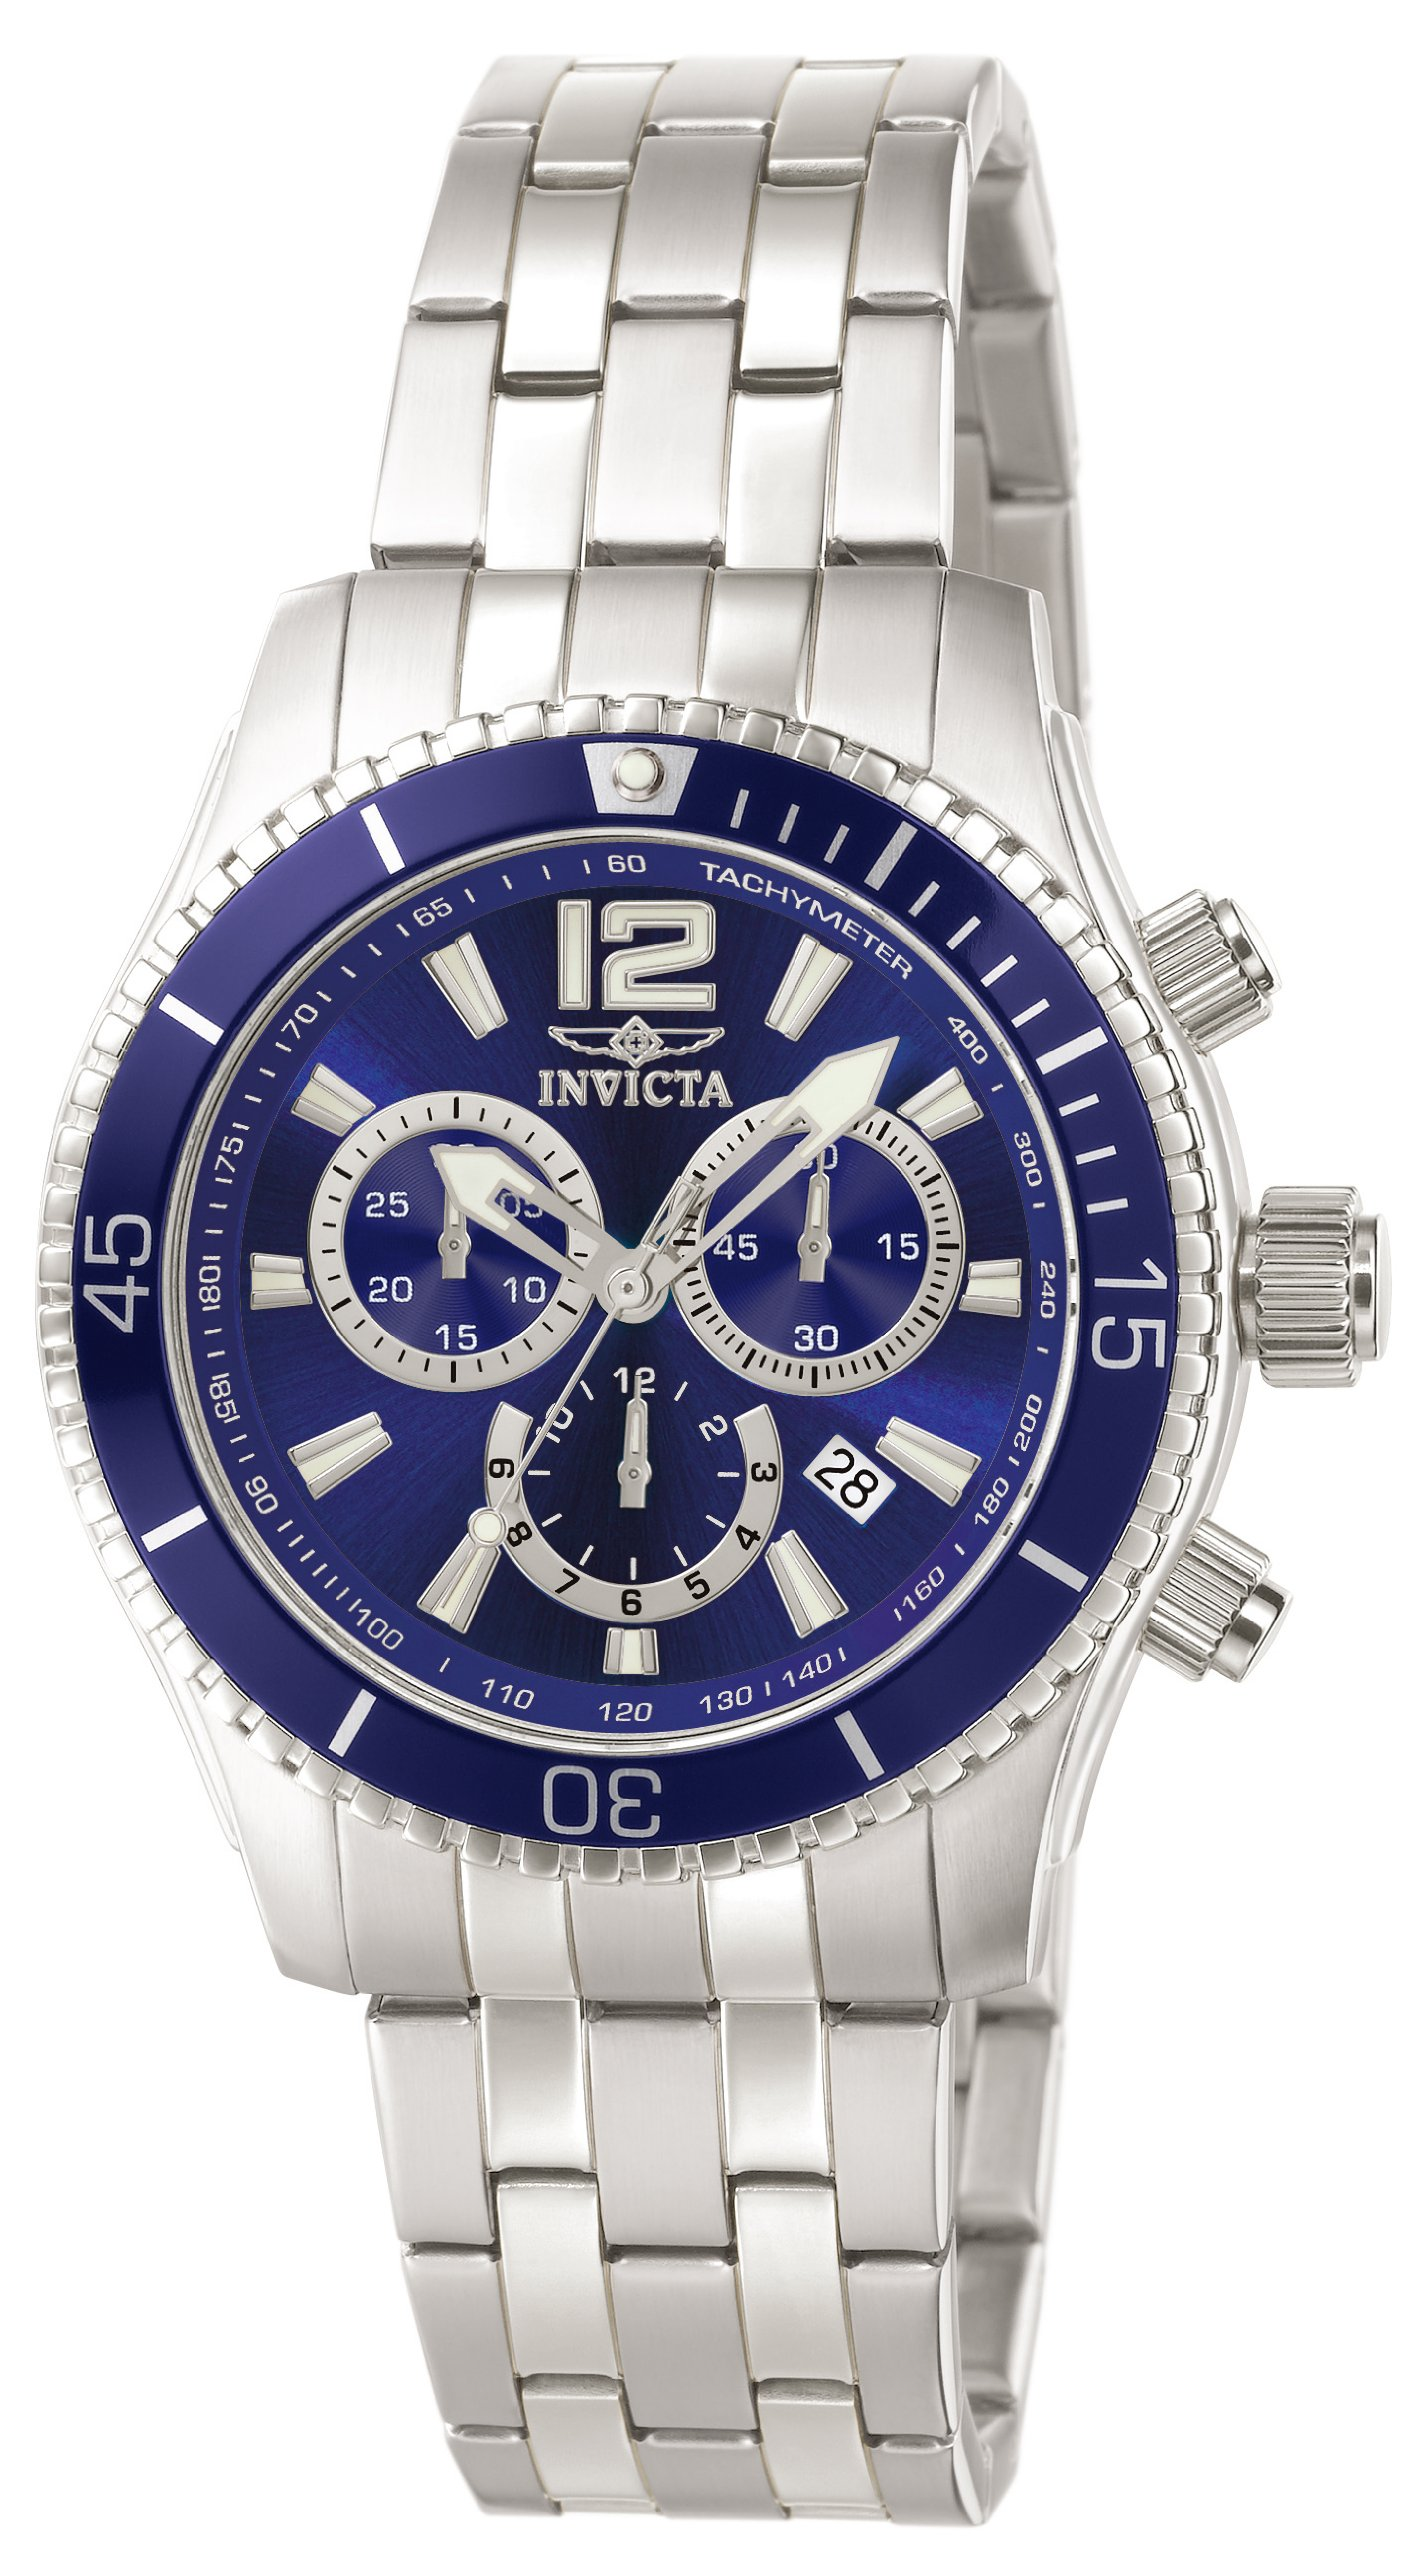 Invicta Men's Specialty Collection Chronograph Stainless Steel Watch (0620) by Invicta